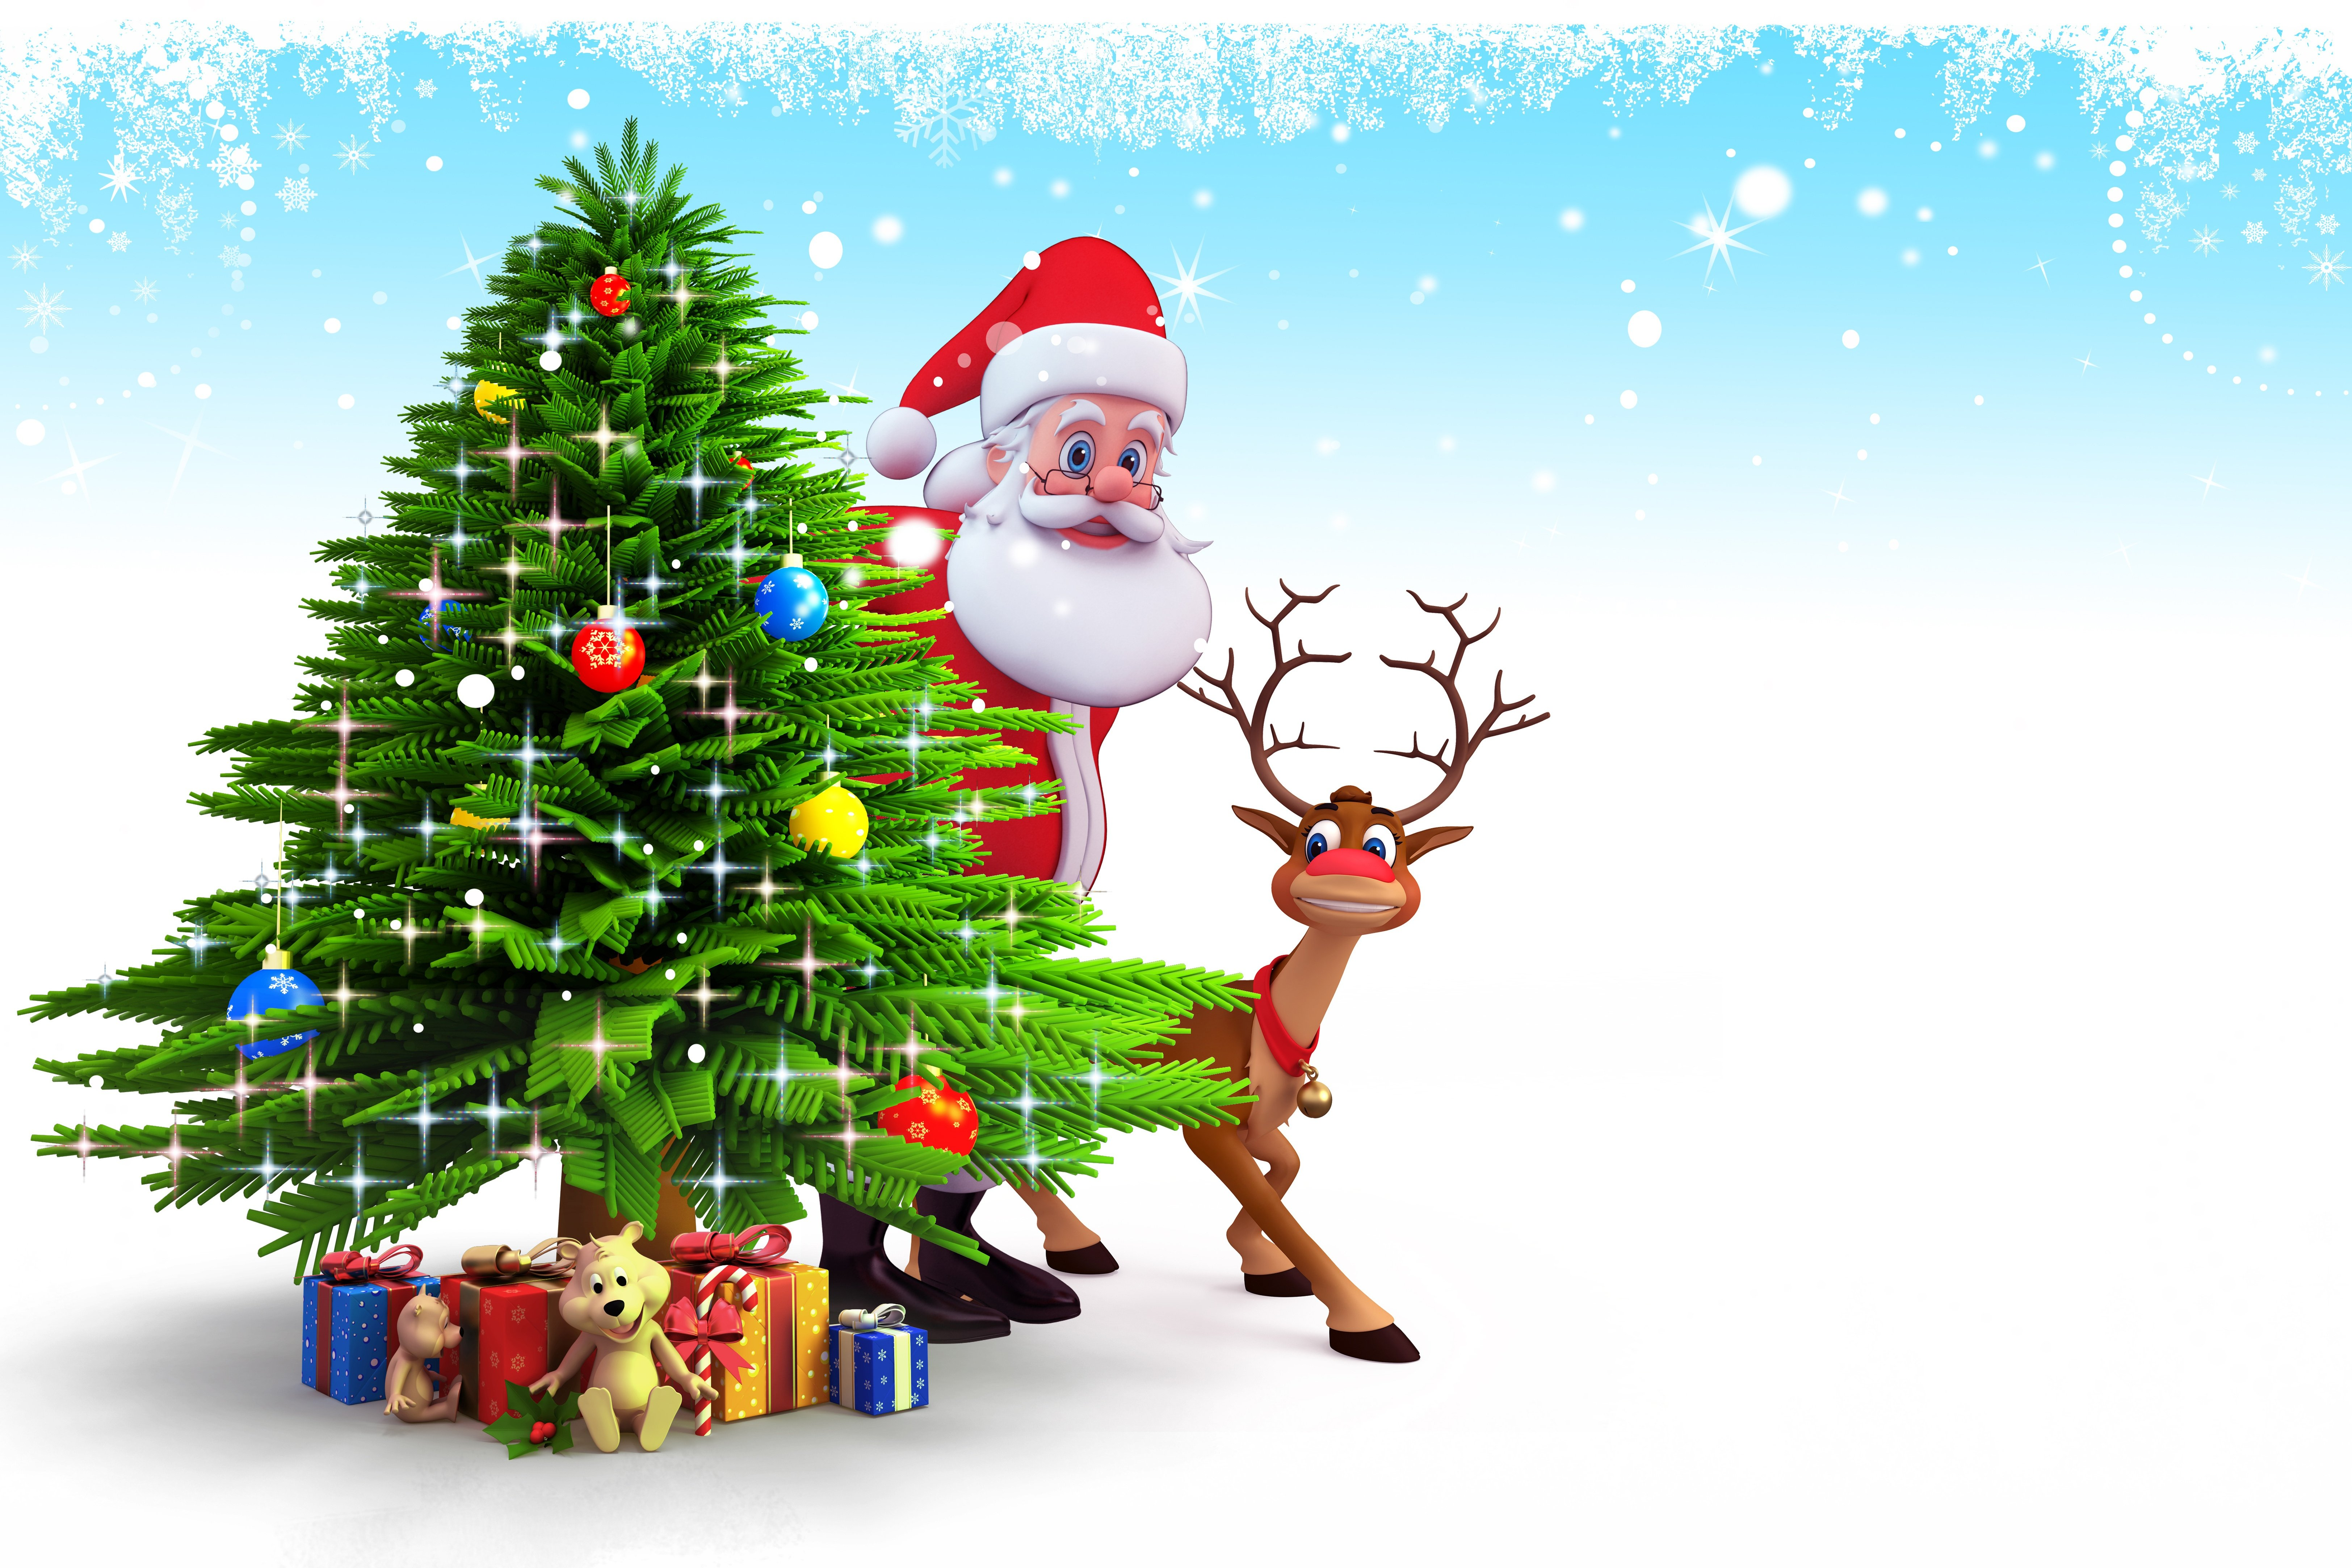 Merry Christmas Backgrounds Hd Wallpapers Mac   Animated 6496x4331